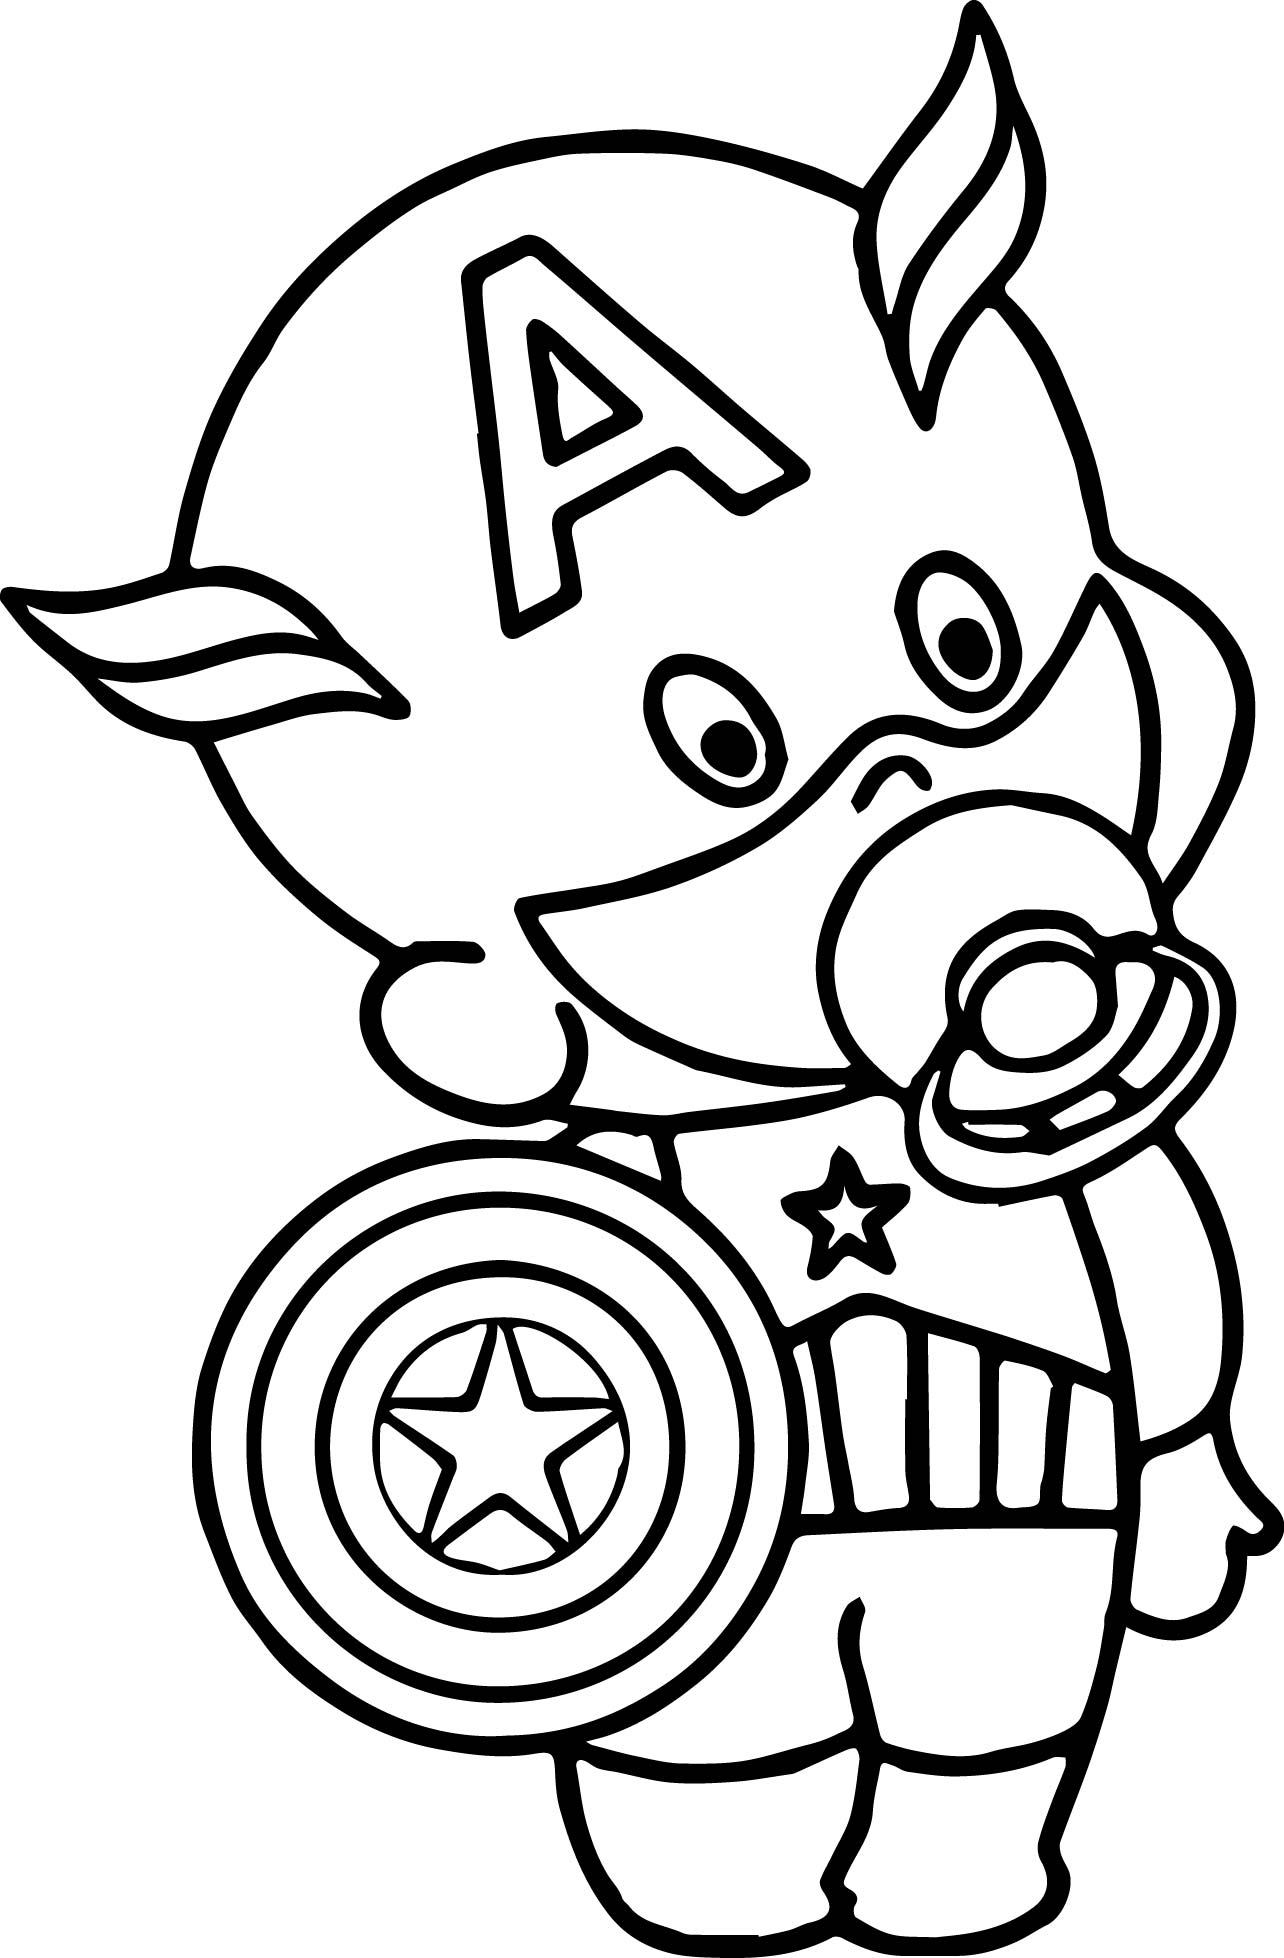 baby captain america coloring pages - photo#1